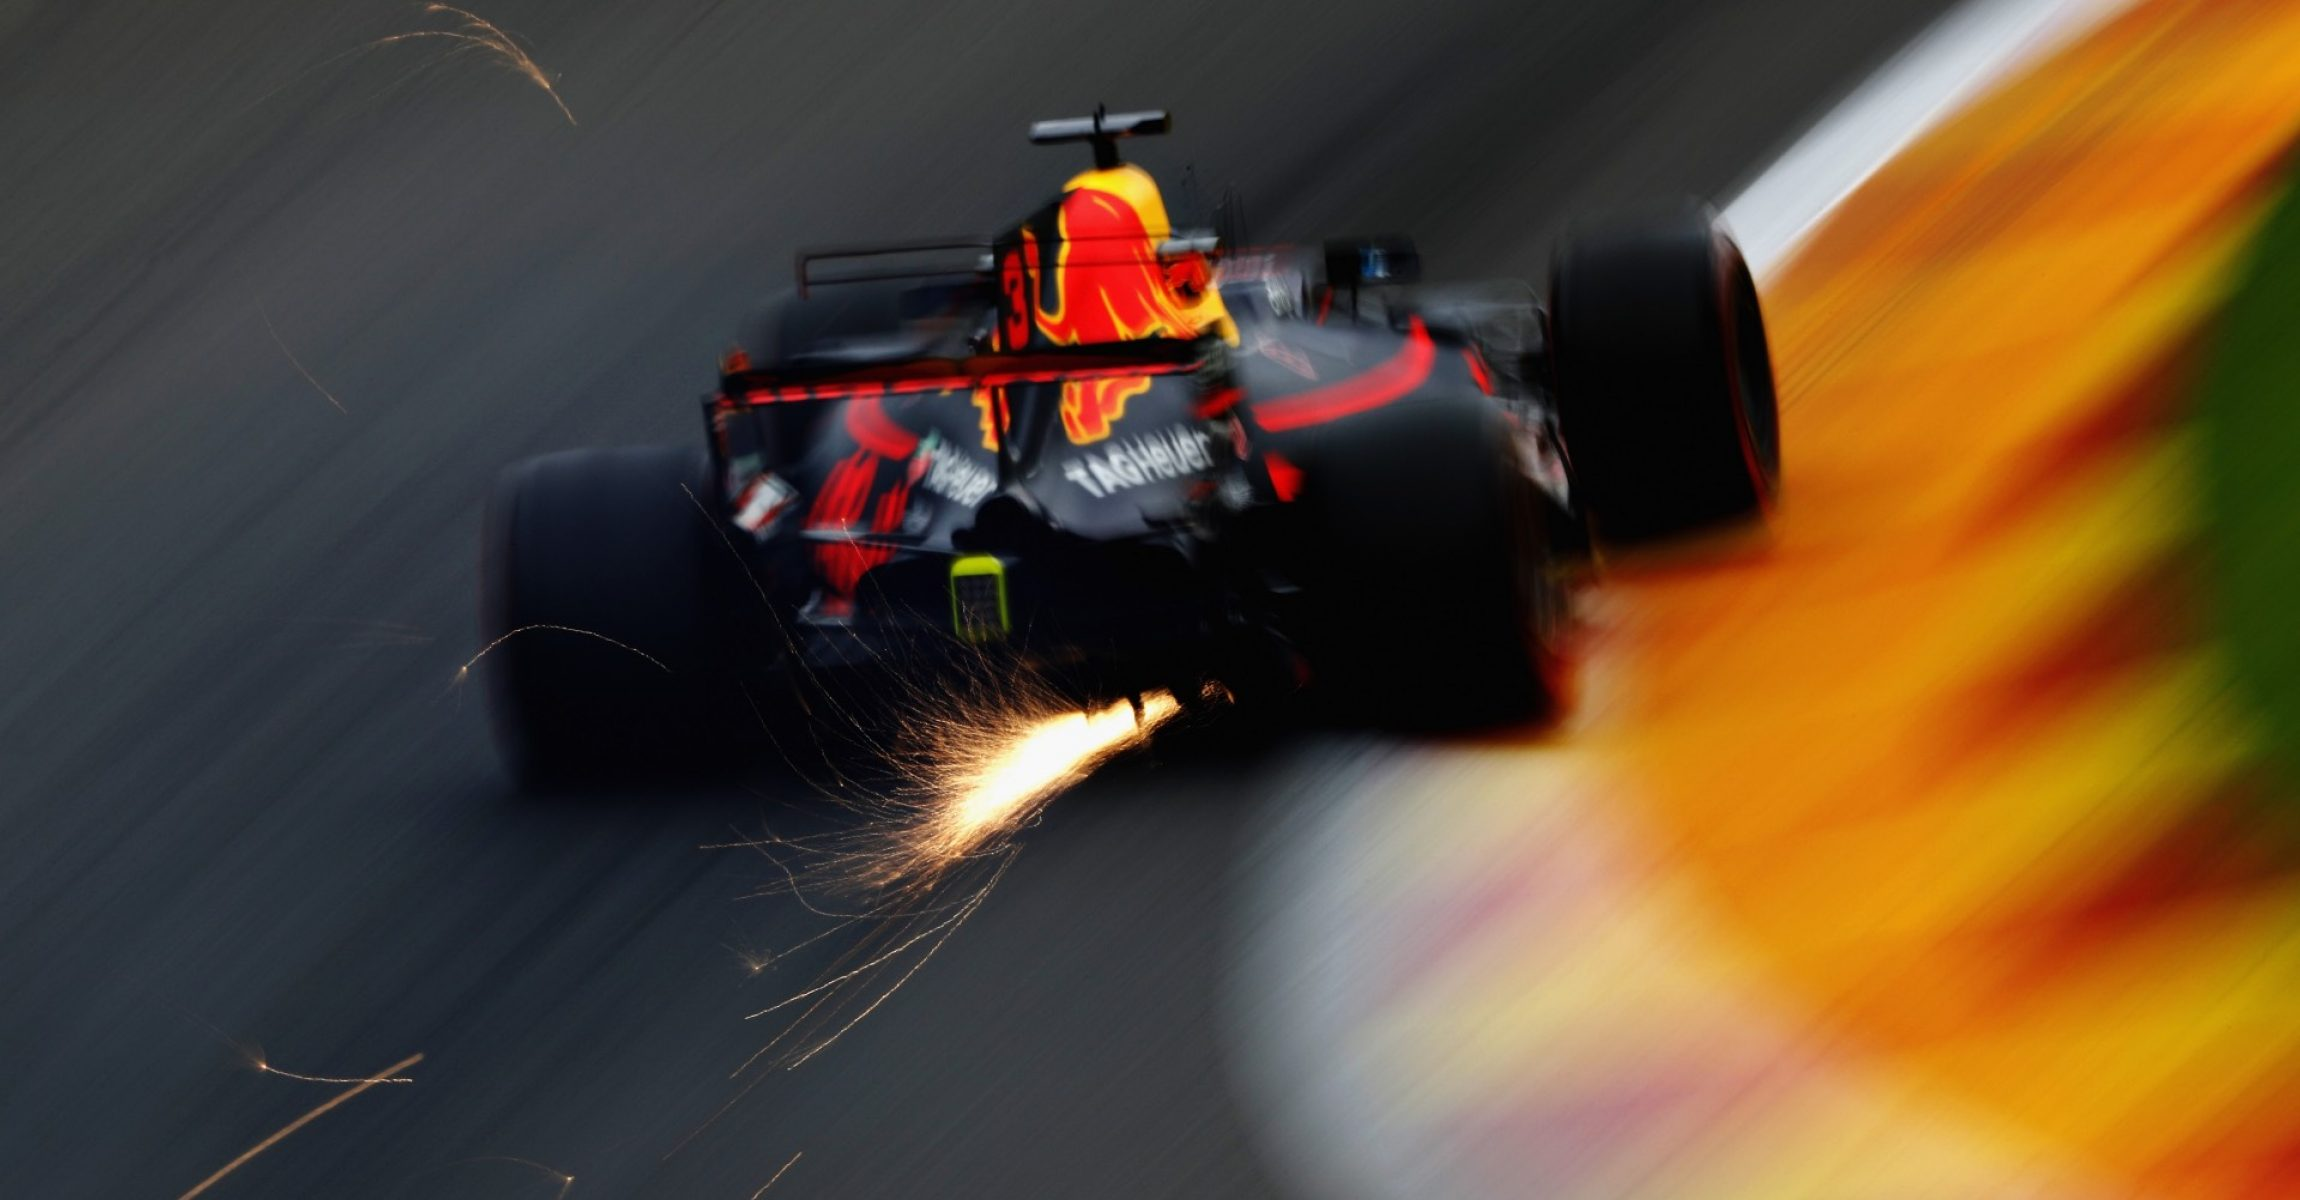 SPA, BELGIUM - AUGUST 25: Sparks fly behind Daniel Ricciardo of Australia driving the (3) Red Bull Racing Red Bull-TAG Heuer RB13 TAG Heuer on track during practice for the Formula One Grand Prix of Belgium at Circuit de Spa-Francorchamps on August 25, 2017 in Spa, Belgium.  (Photo by Mark Thompson/Getty Images)